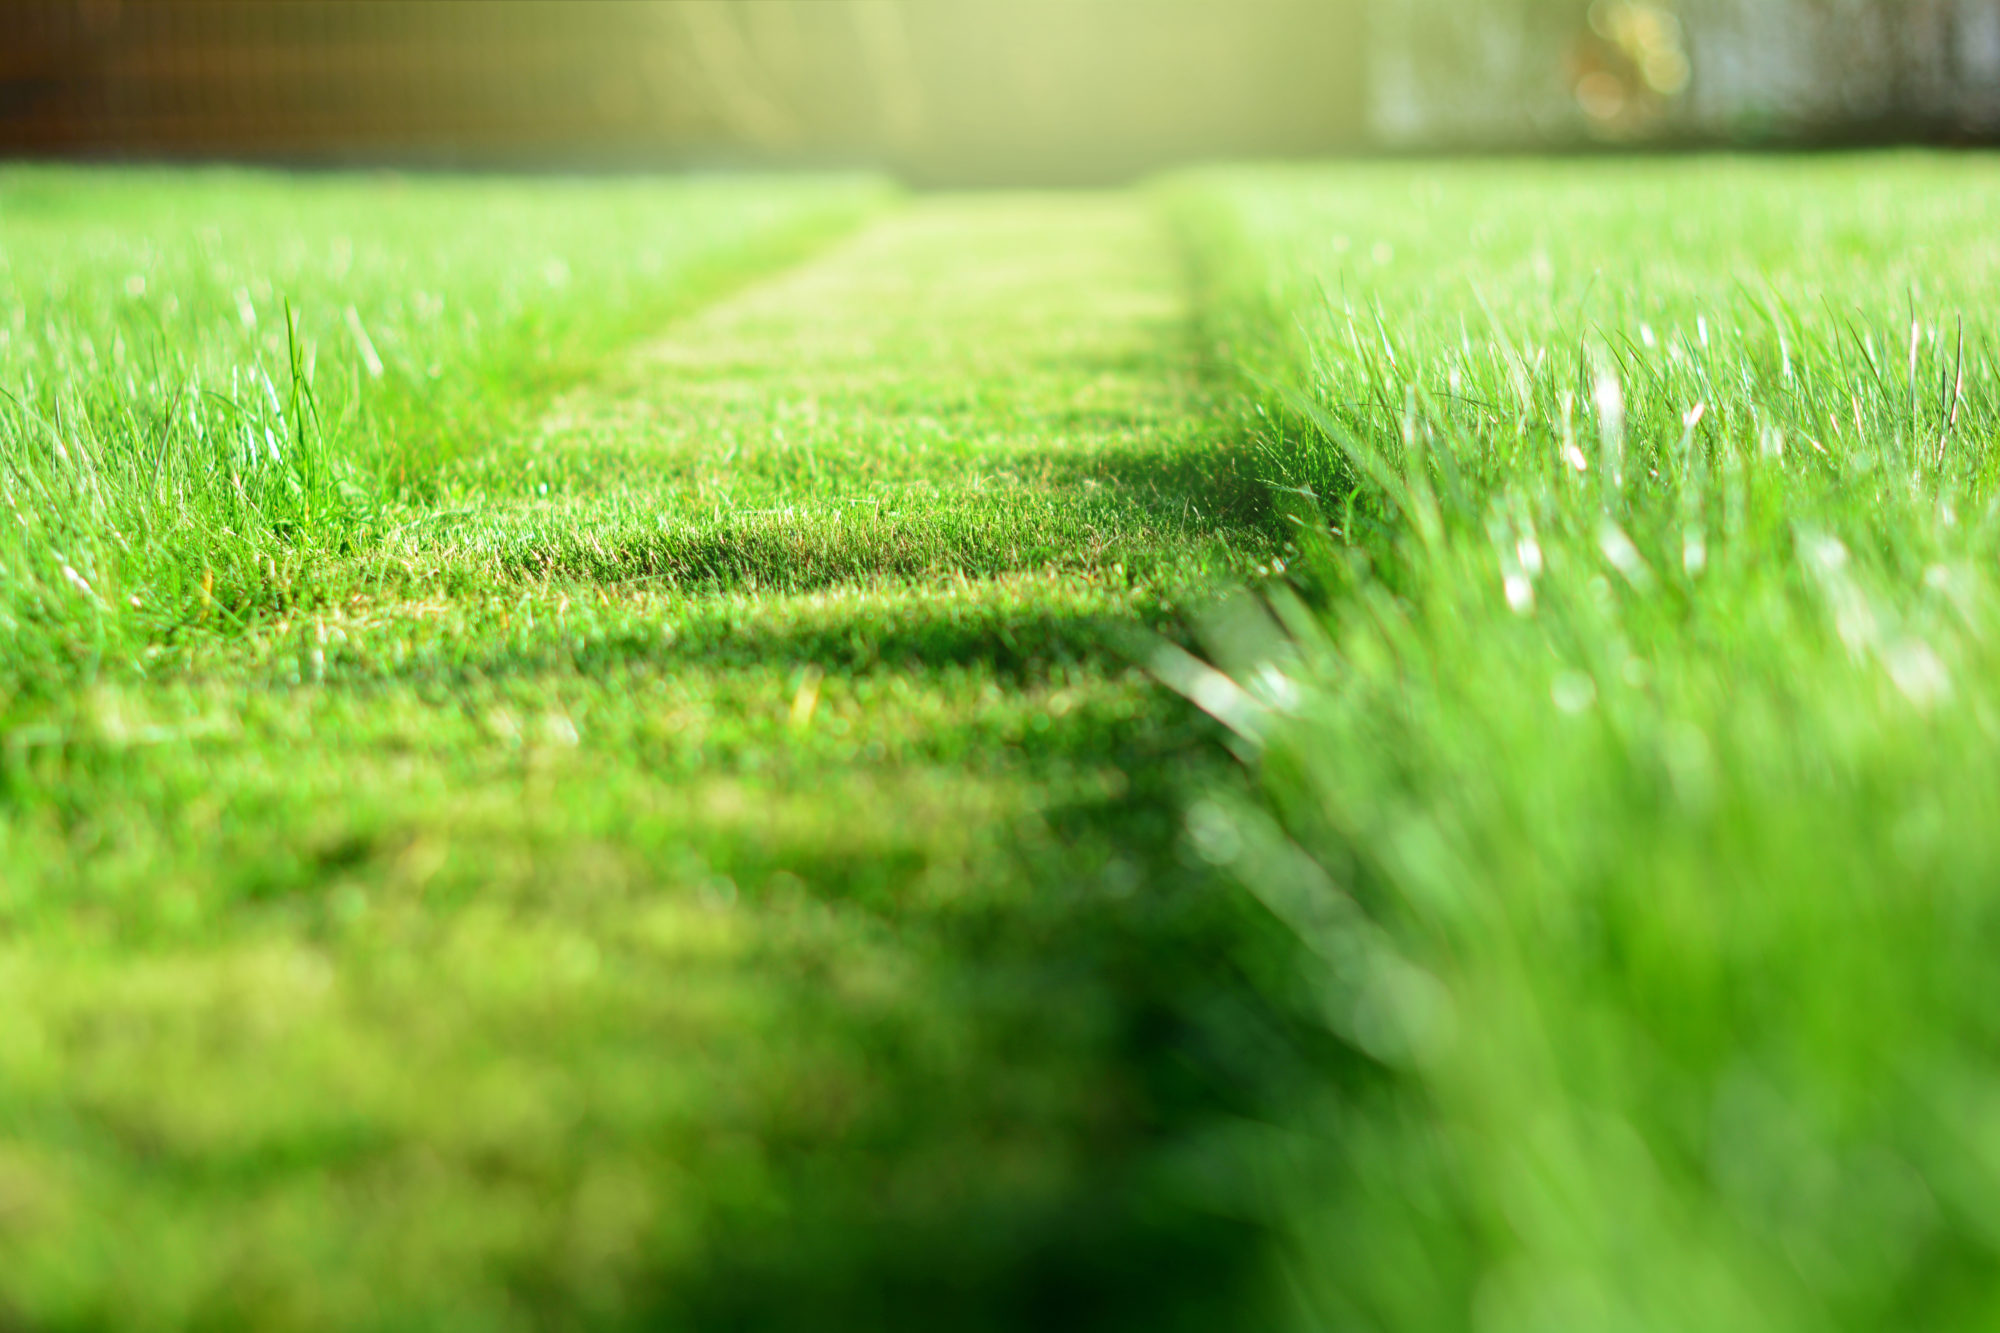 this is a photo of Cut strip of green grass. Mowing the lawn. Selective focus, new england lawn care, western ma